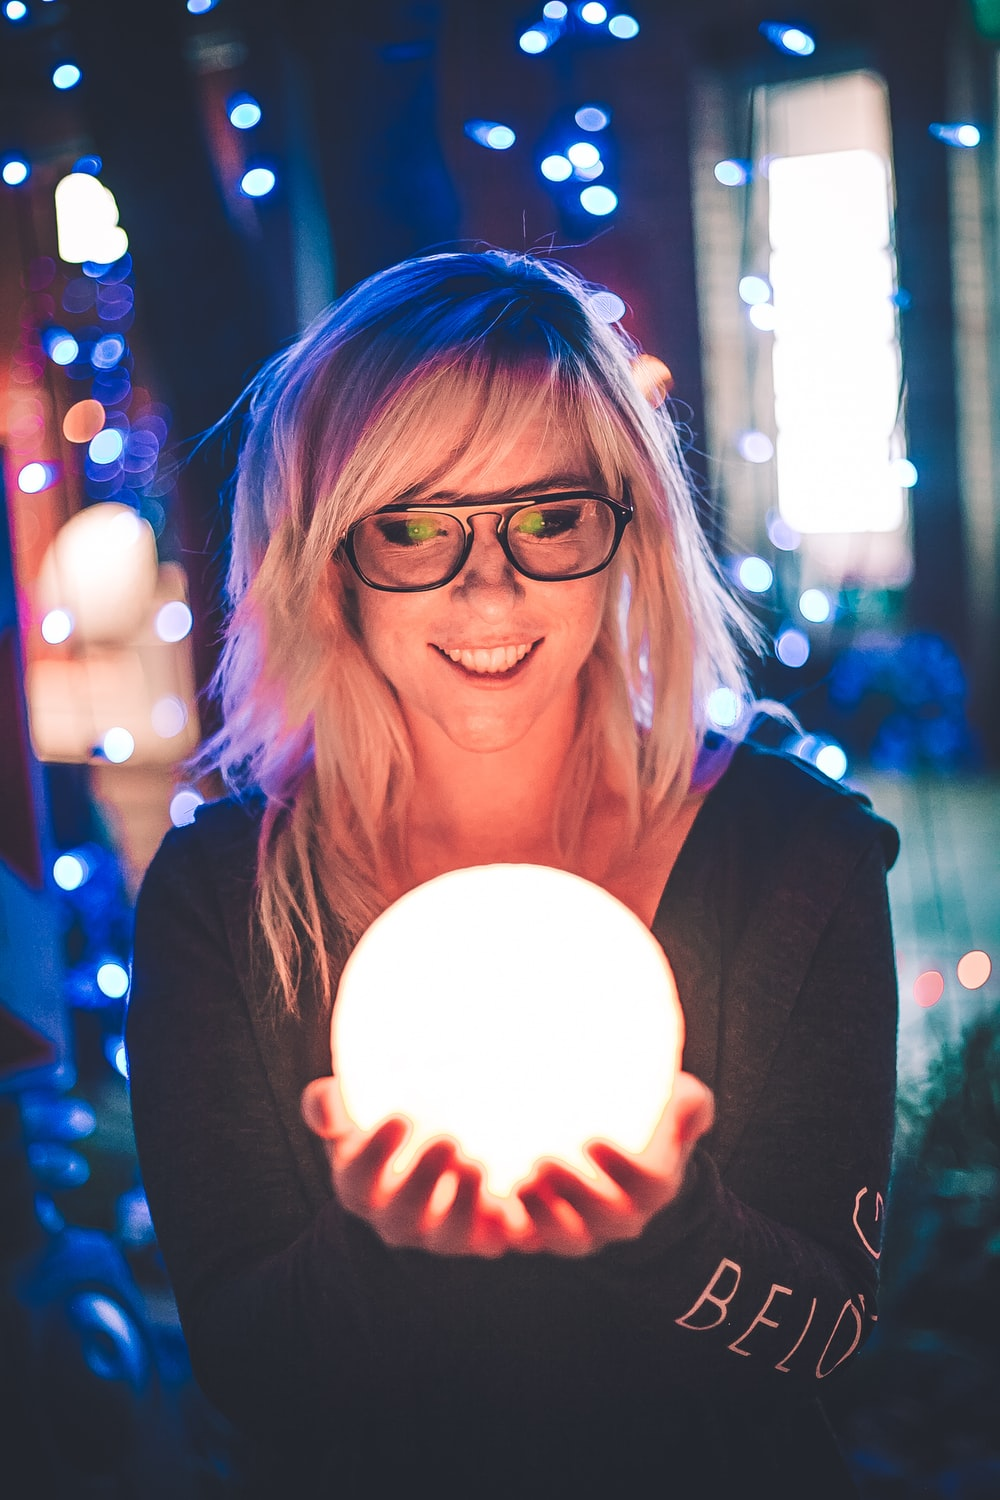 selective focus photography of woman holding lighted ball